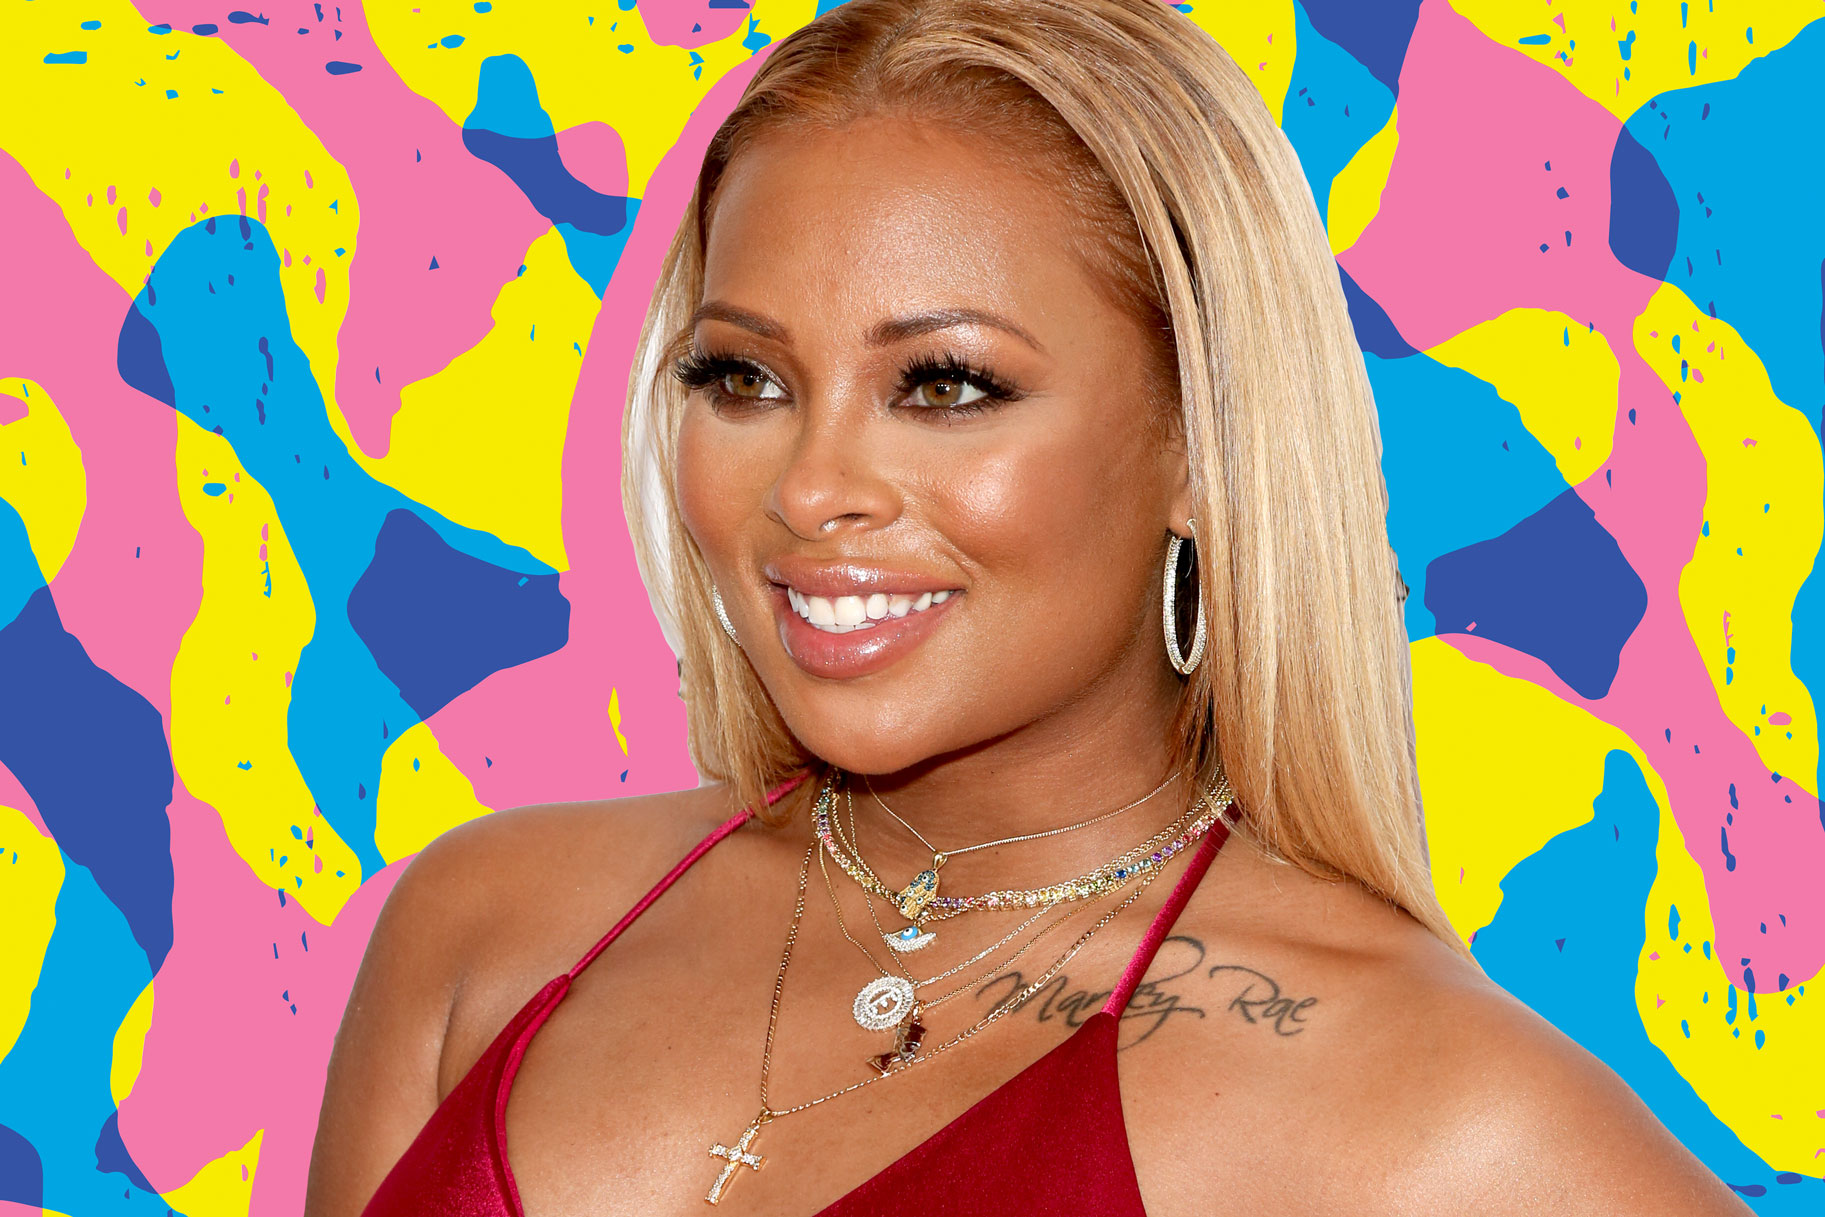 eva-marcille-is-promoting-a-clothing-line-with-the-mission-to-uplift-inspire-and-encourage-others